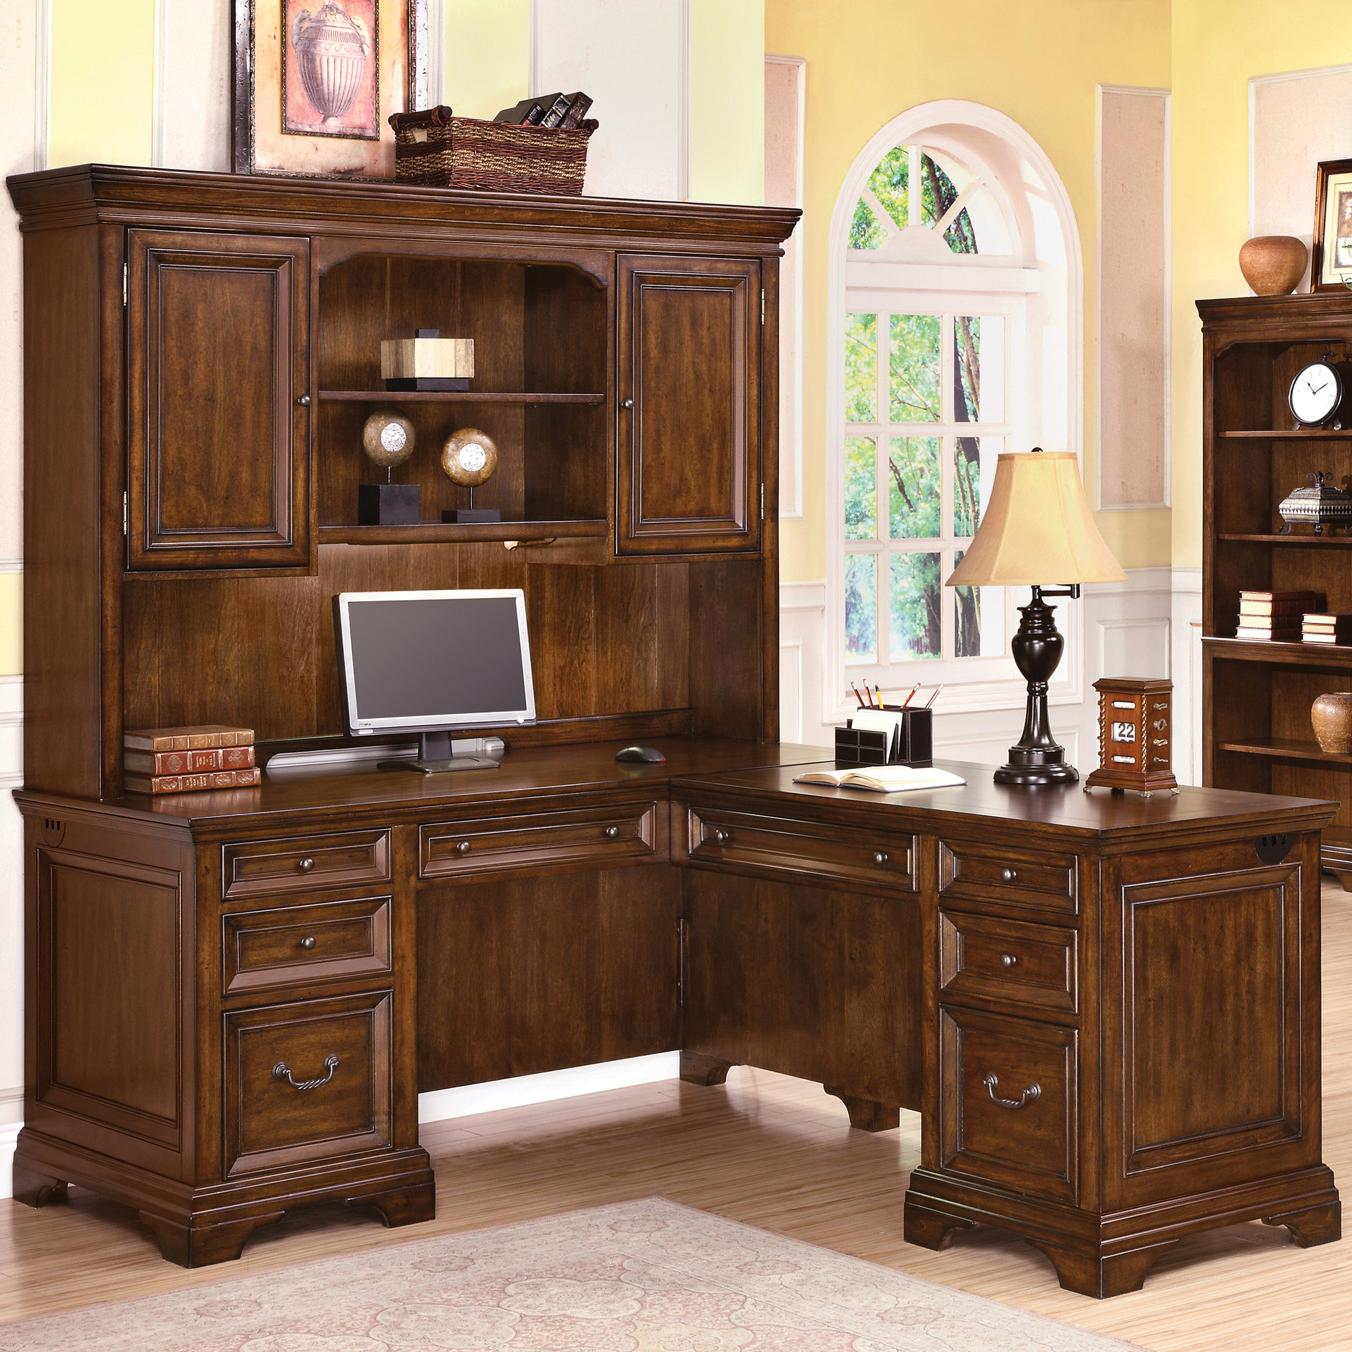 Super Woodlands L Shaped Desk And Hutch By Wynwood A Flexsteel Company At Conlins Furniture Home Interior And Landscaping Ologienasavecom